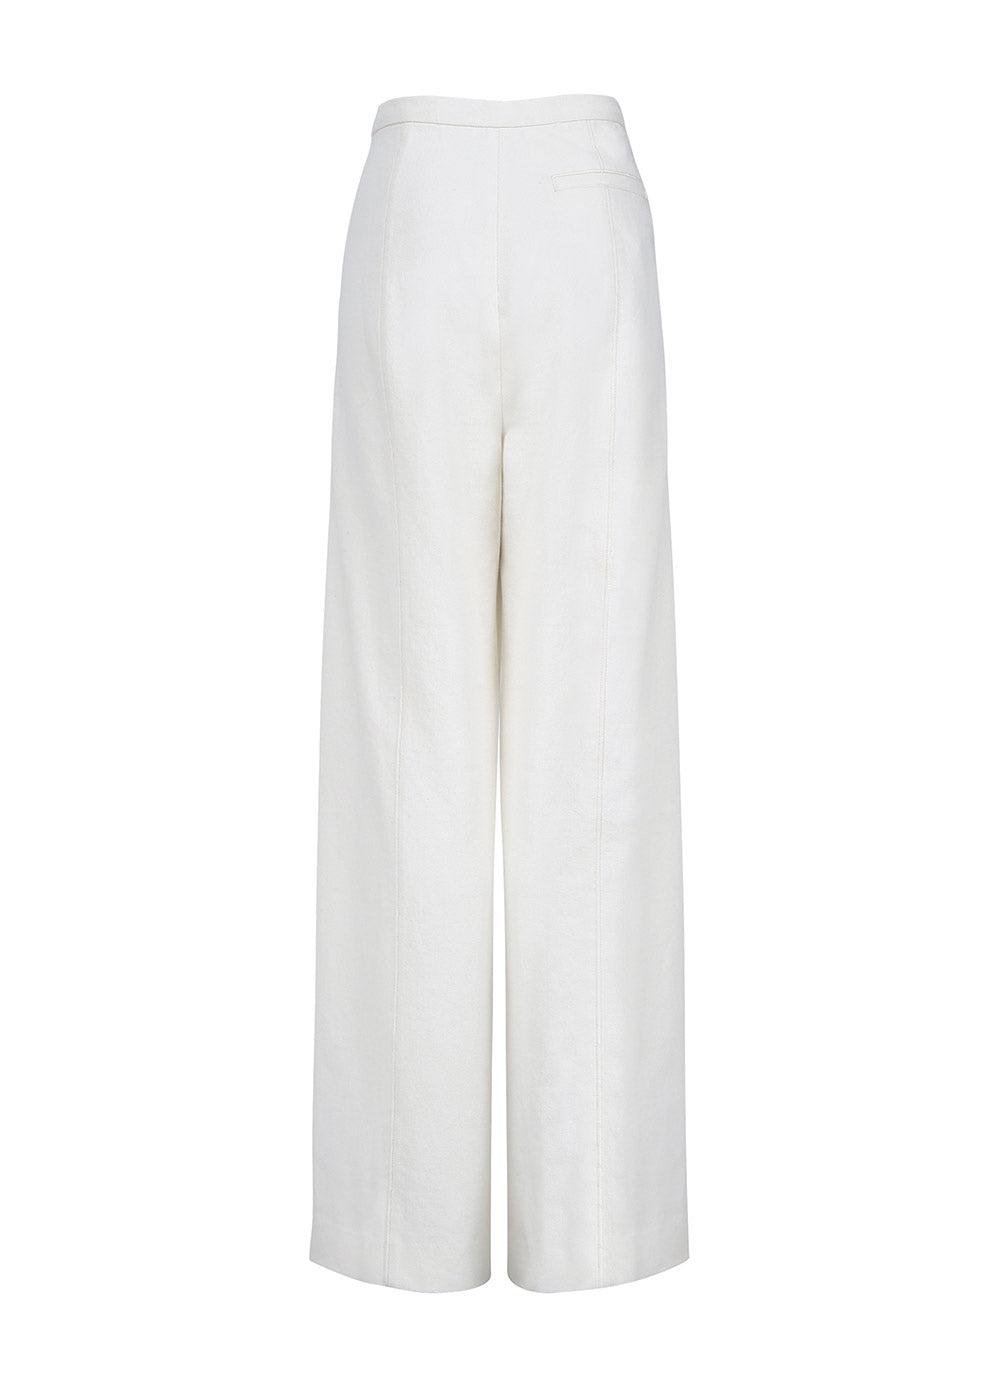 STITCHED PANTS WHITE